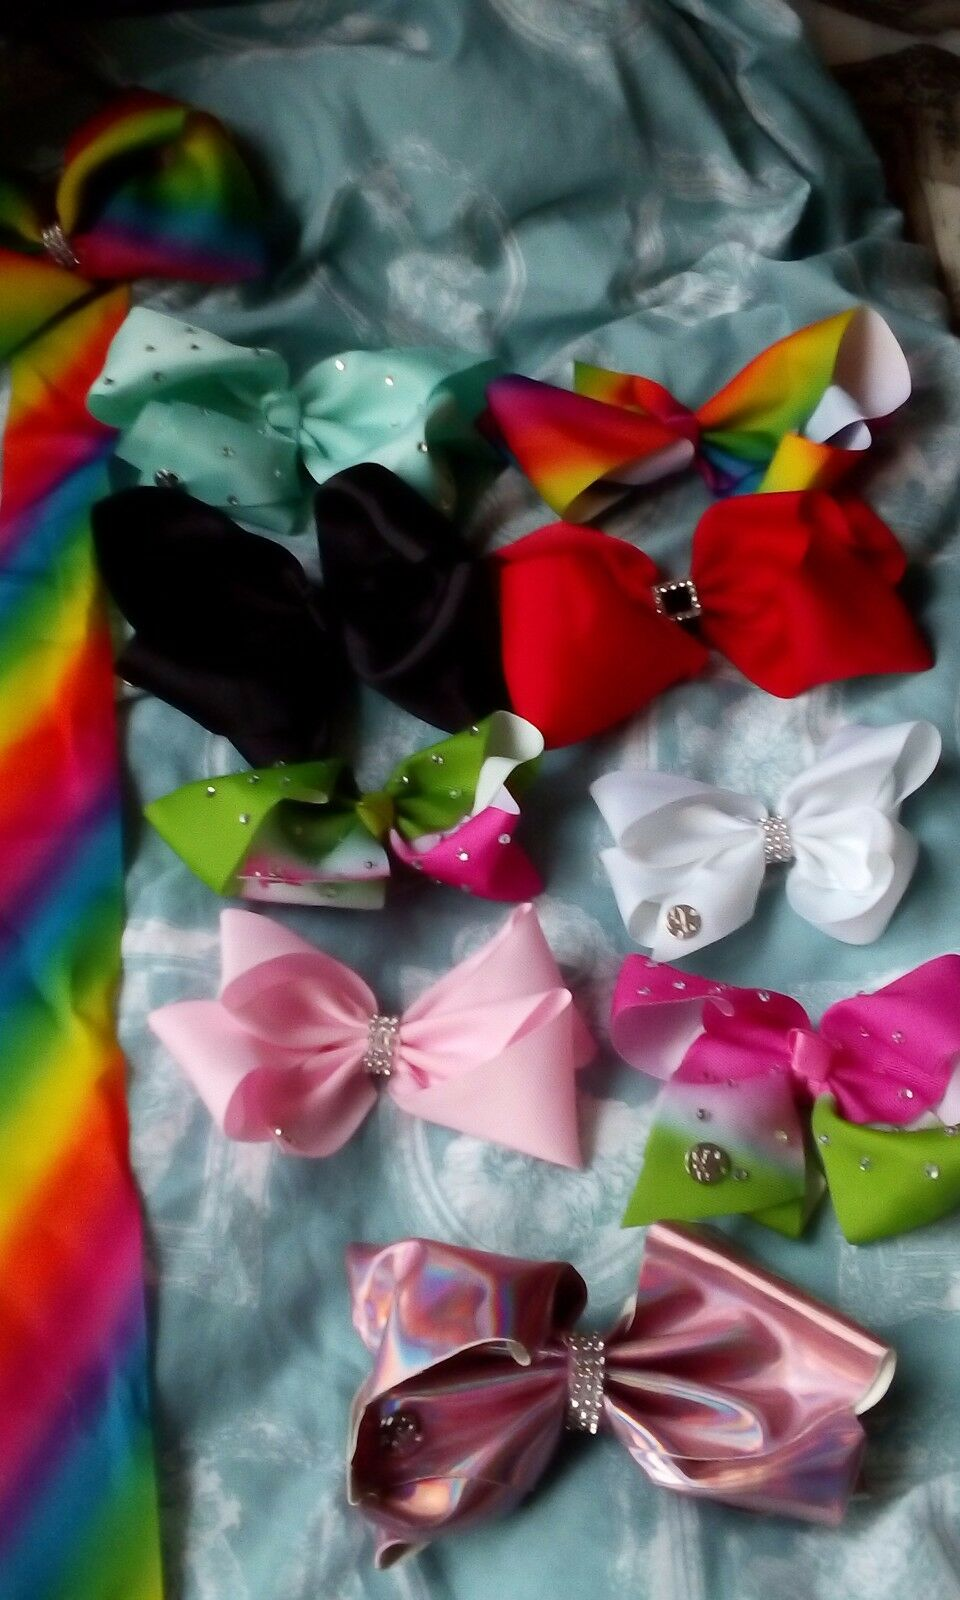 BUNDLE OF 9 JoJo bows including limited Christmas edition and bow ...